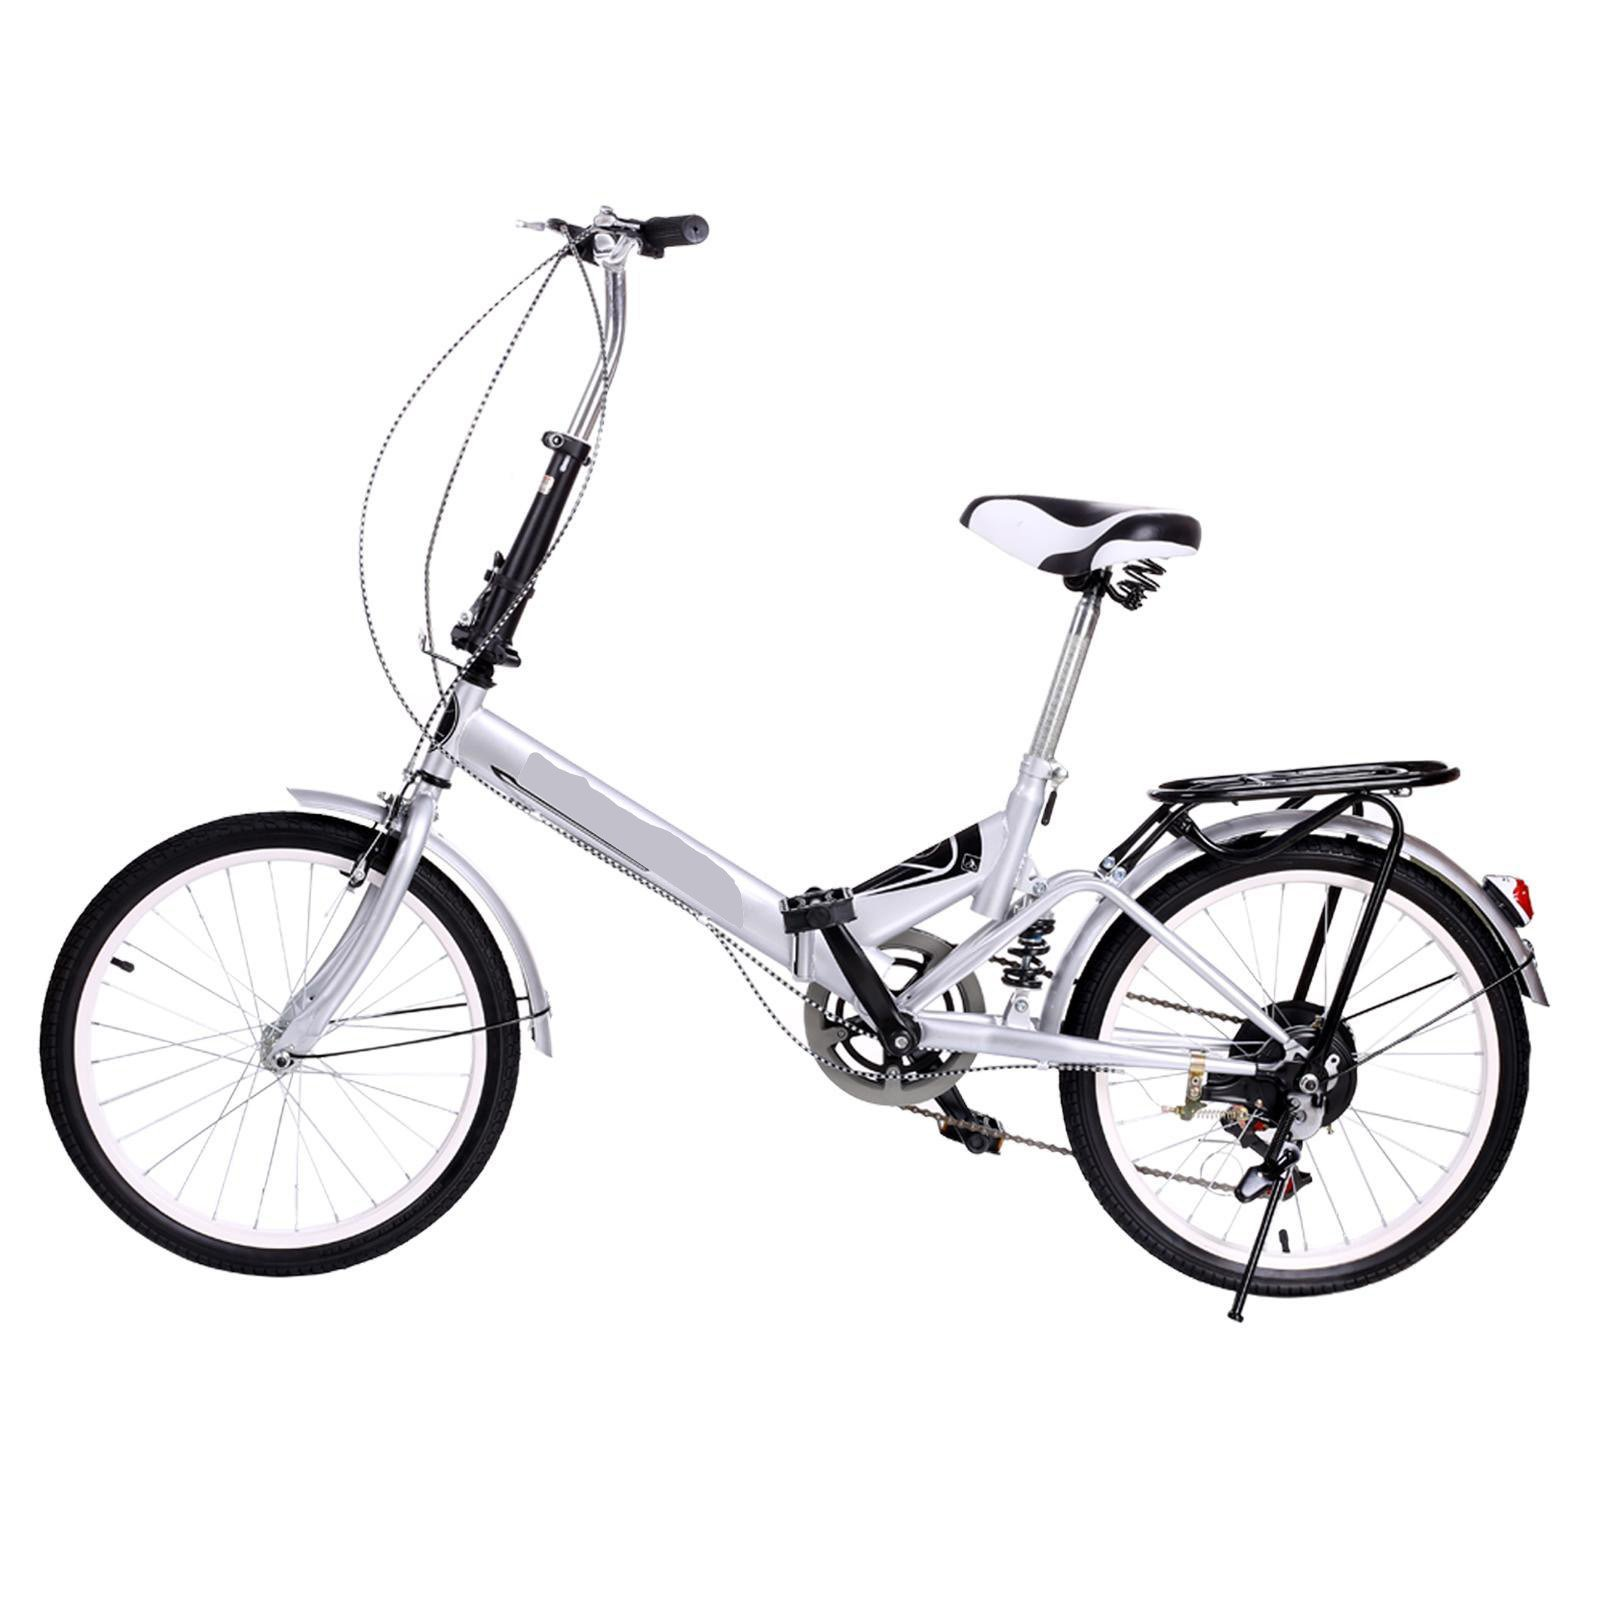 Utheing 20inch Wheel Folding Bike 6 Speed Mountain Bicycle Cycling Steel Frame Double Disk, Silver by Utheing (Image #1)